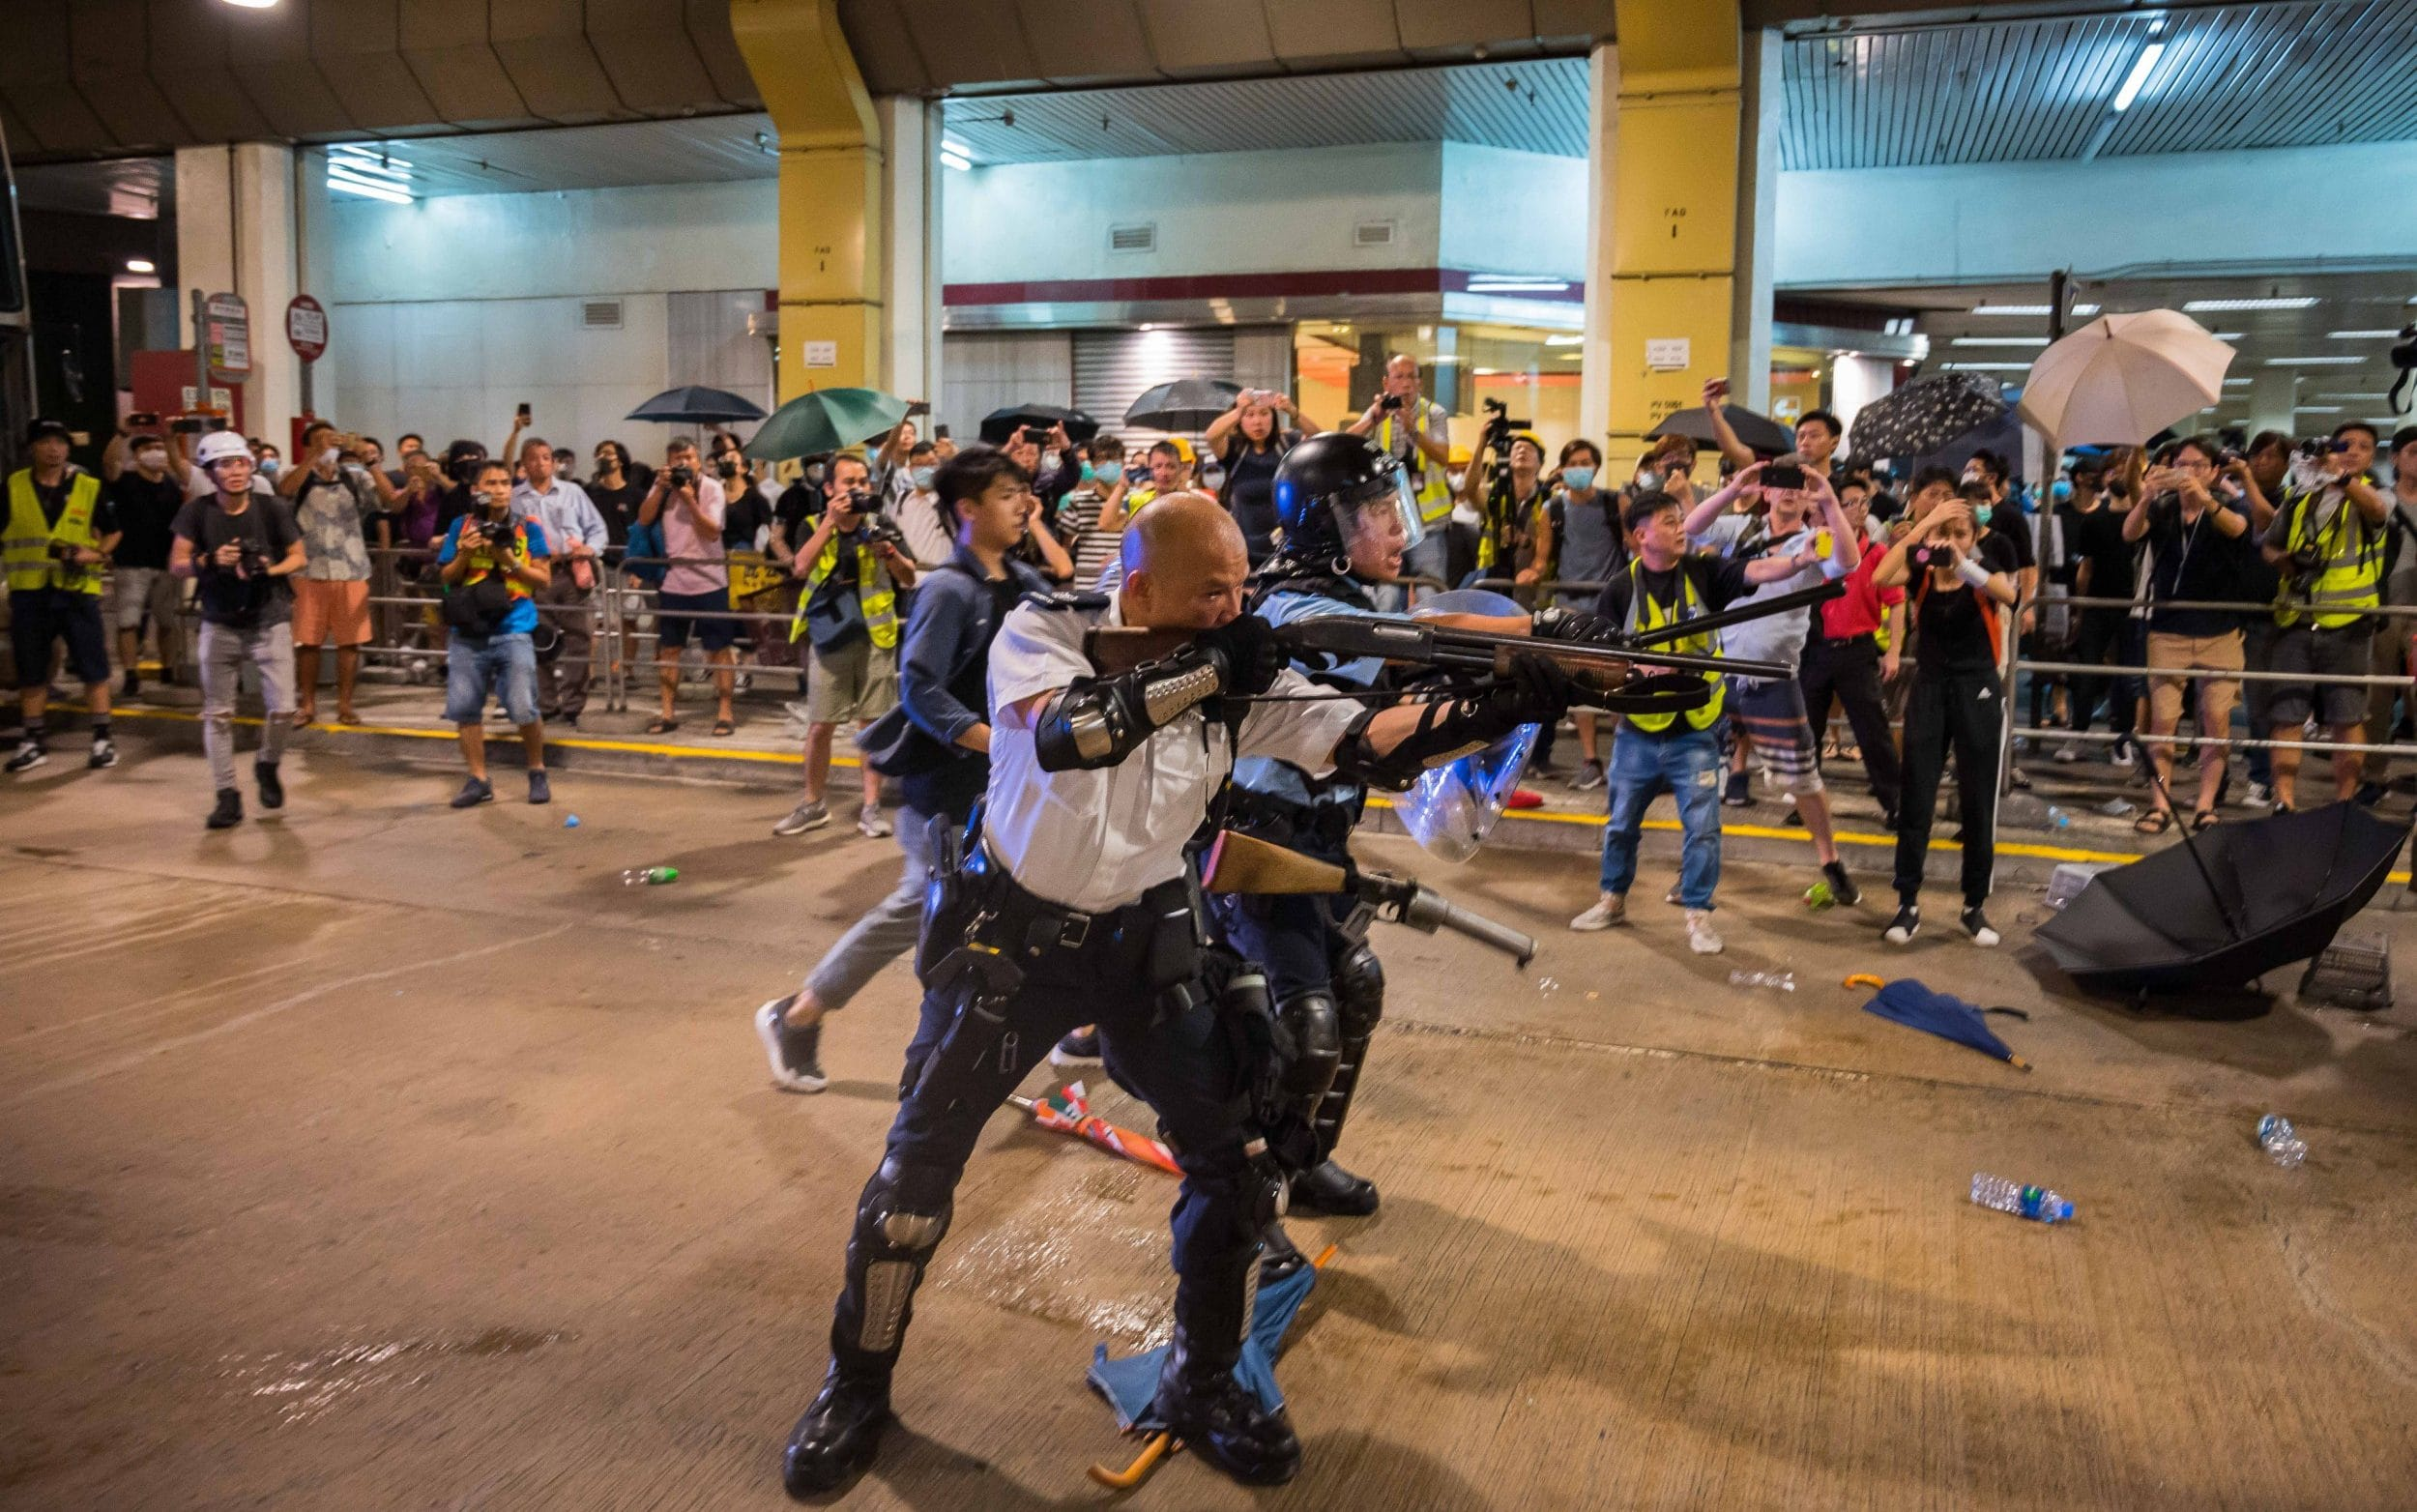 Hong Kong protesters clash with police as 44 activists charged with rioting